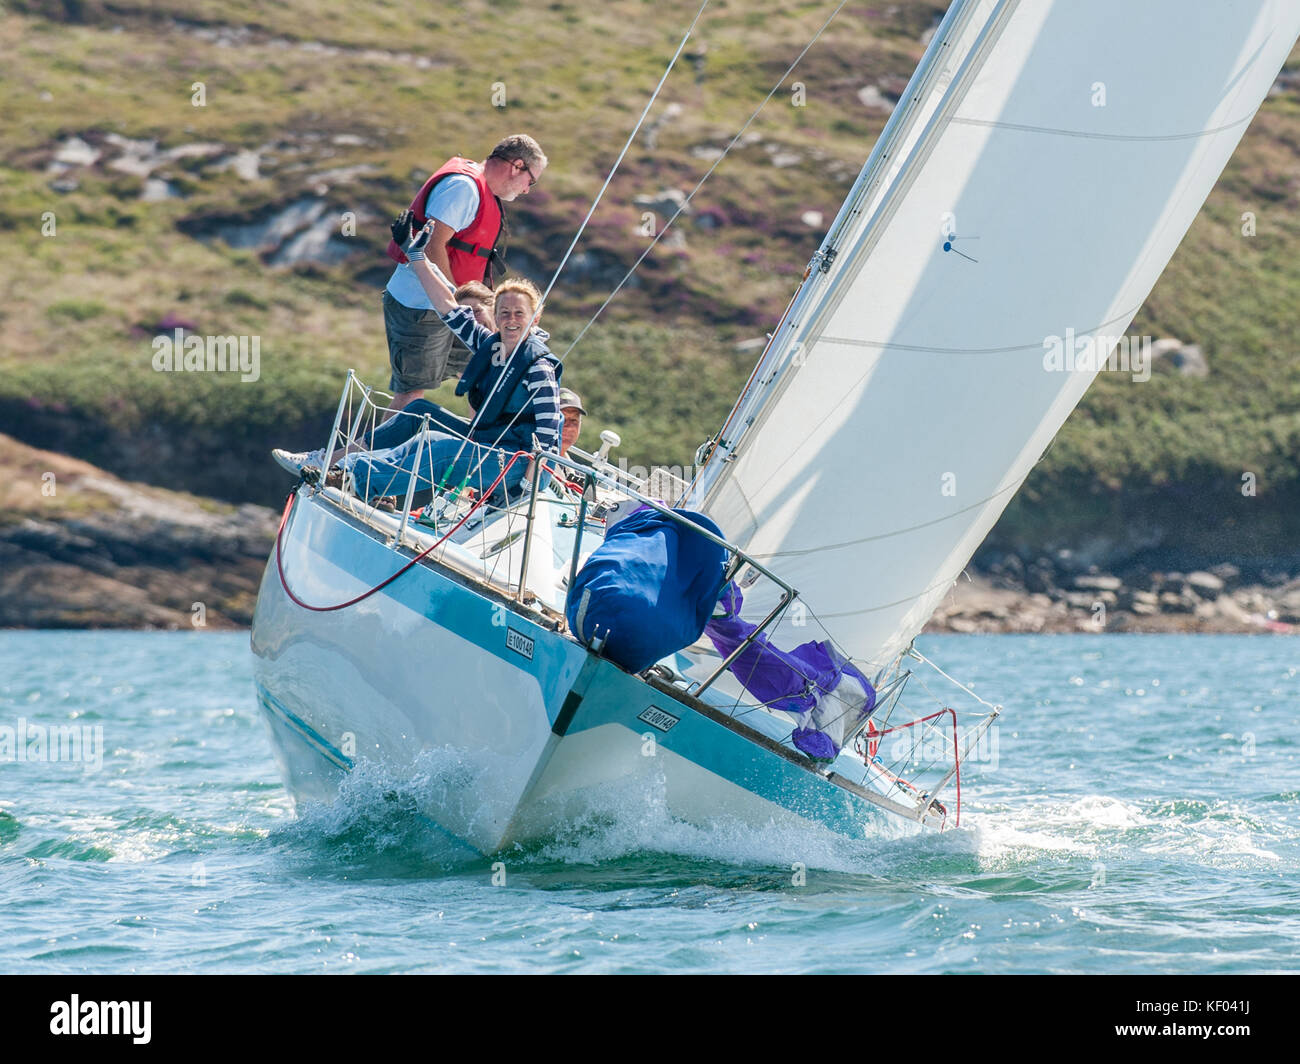 sailing-yacht-witchcraft-racing-during-t